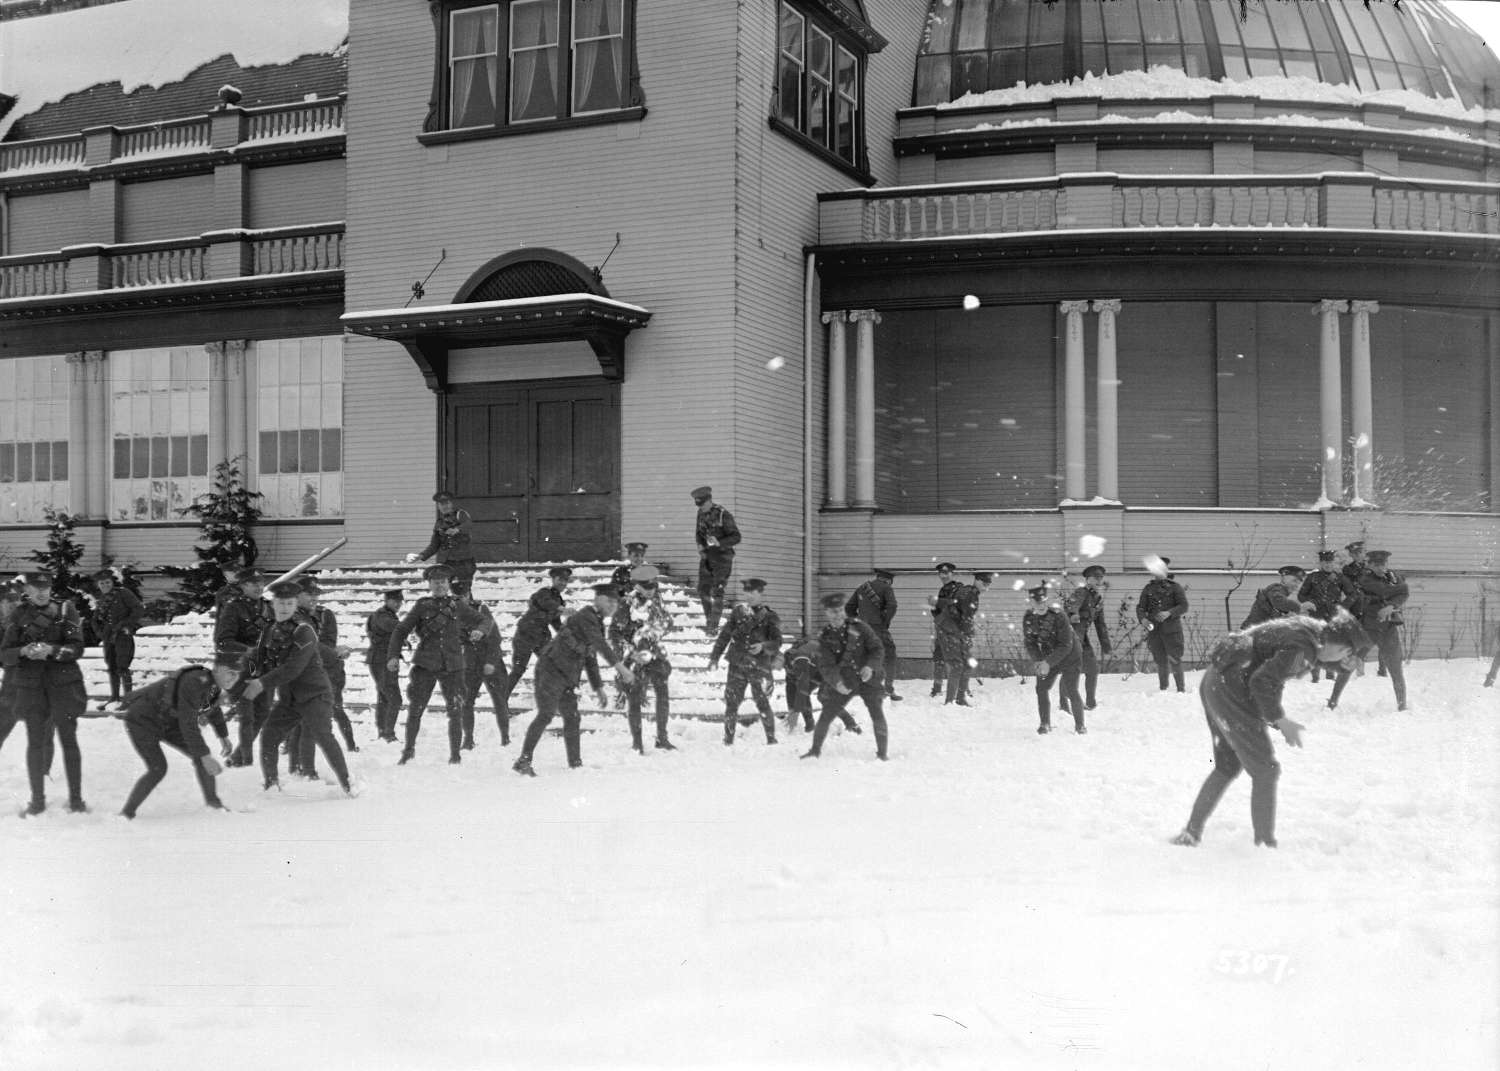 Men in uniform throwing snowballs